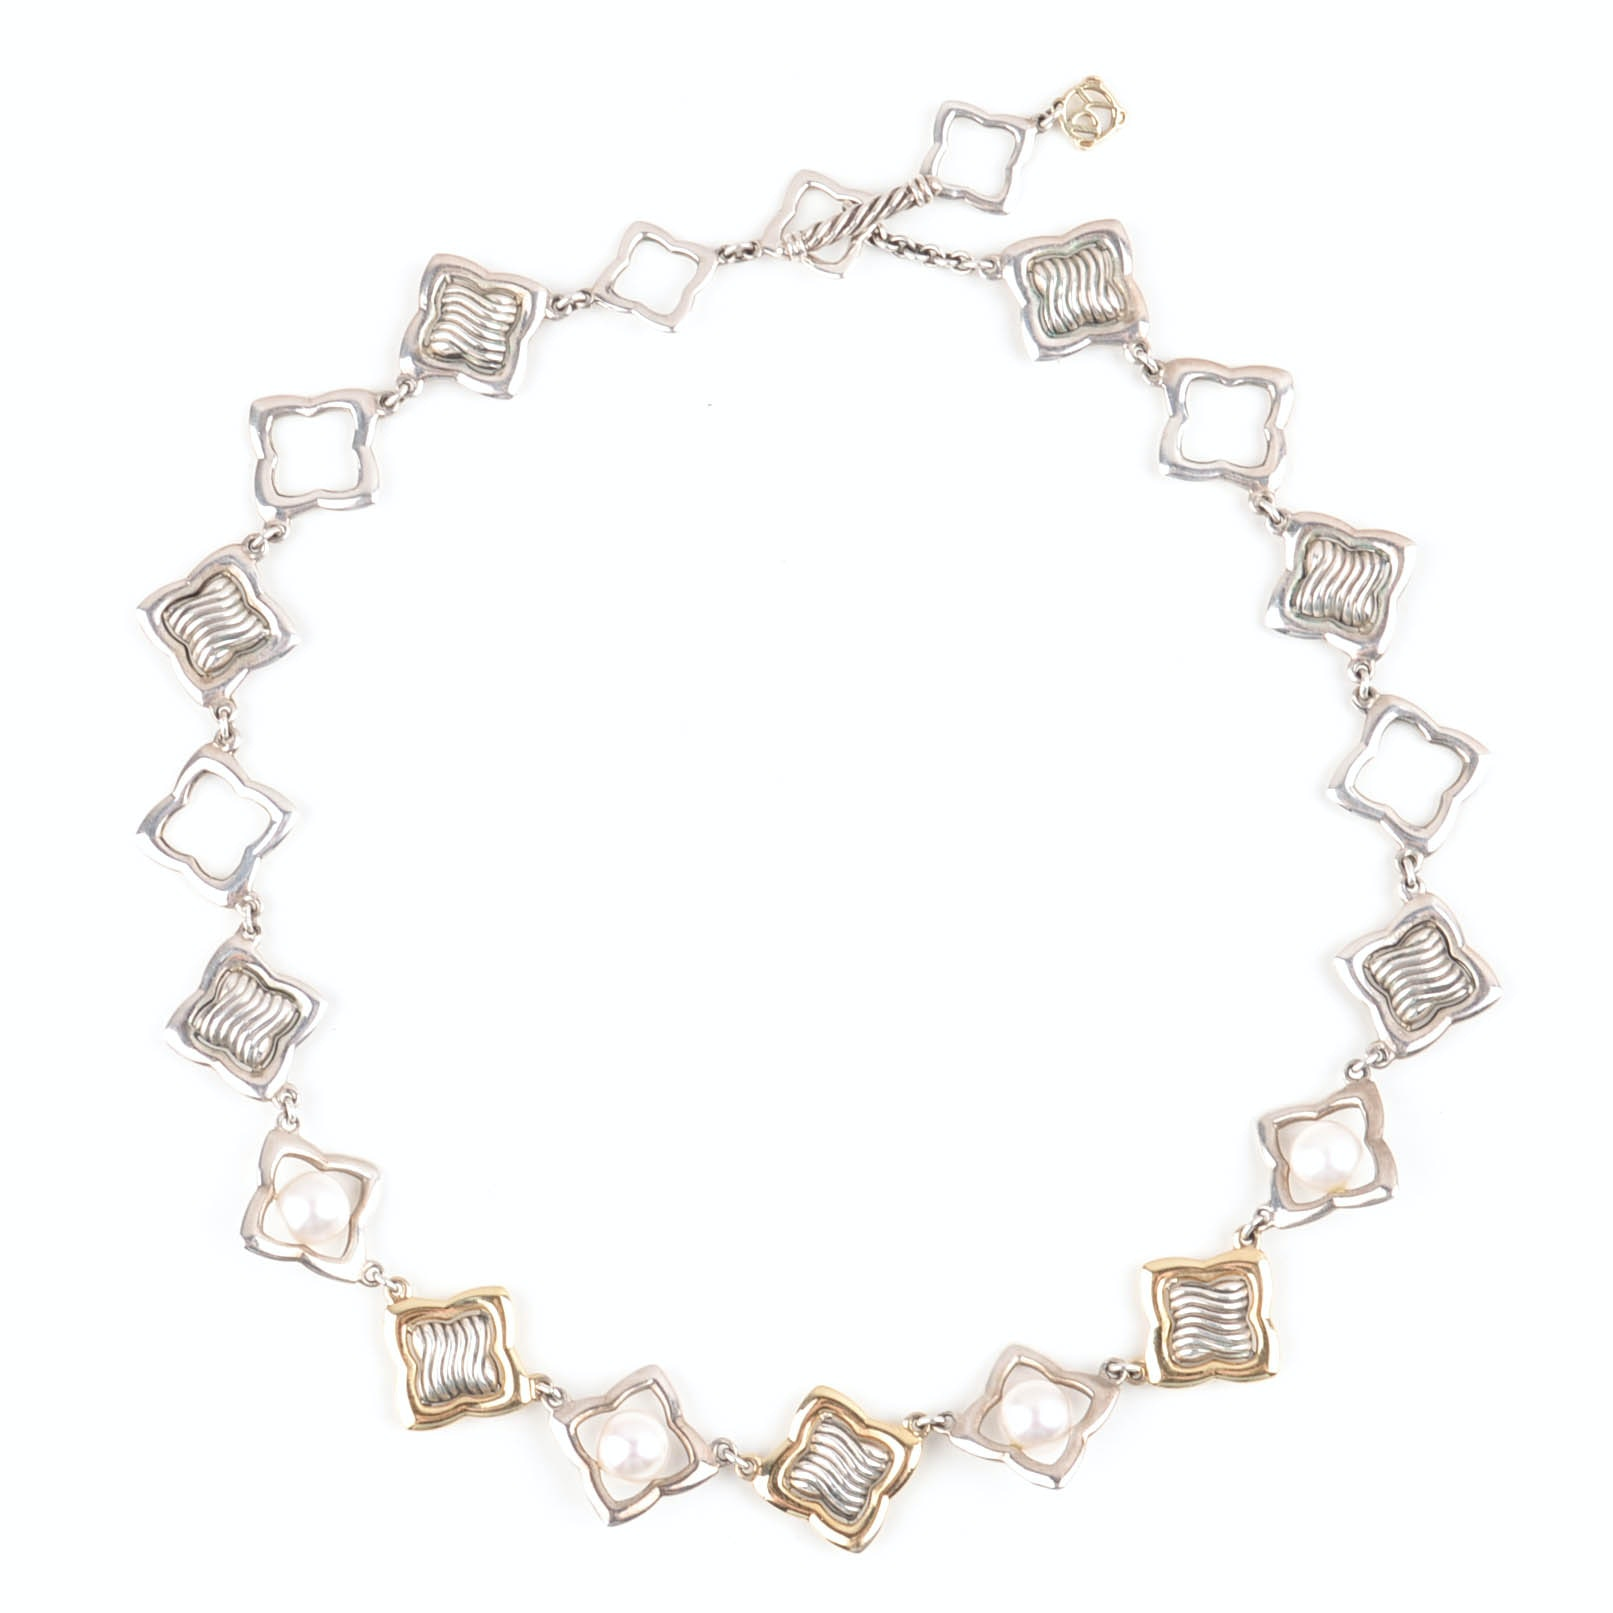 David Yurman Sterling Silver 18K Yellow Gold and Freshwater Pearls Necklace